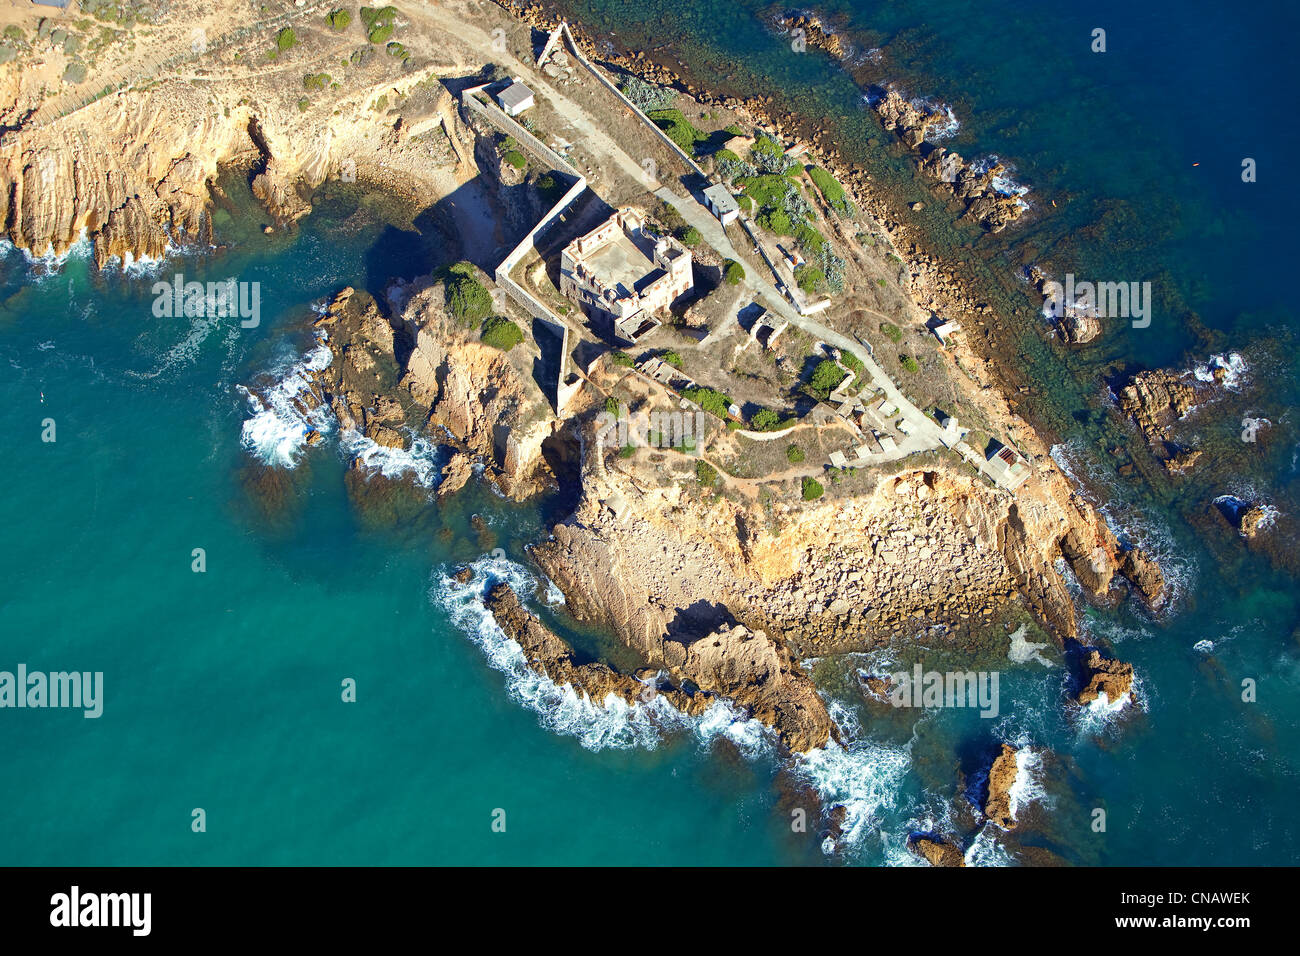 france var sanary sur mer pointe de la cride aerial view stock photo royalty free image. Black Bedroom Furniture Sets. Home Design Ideas